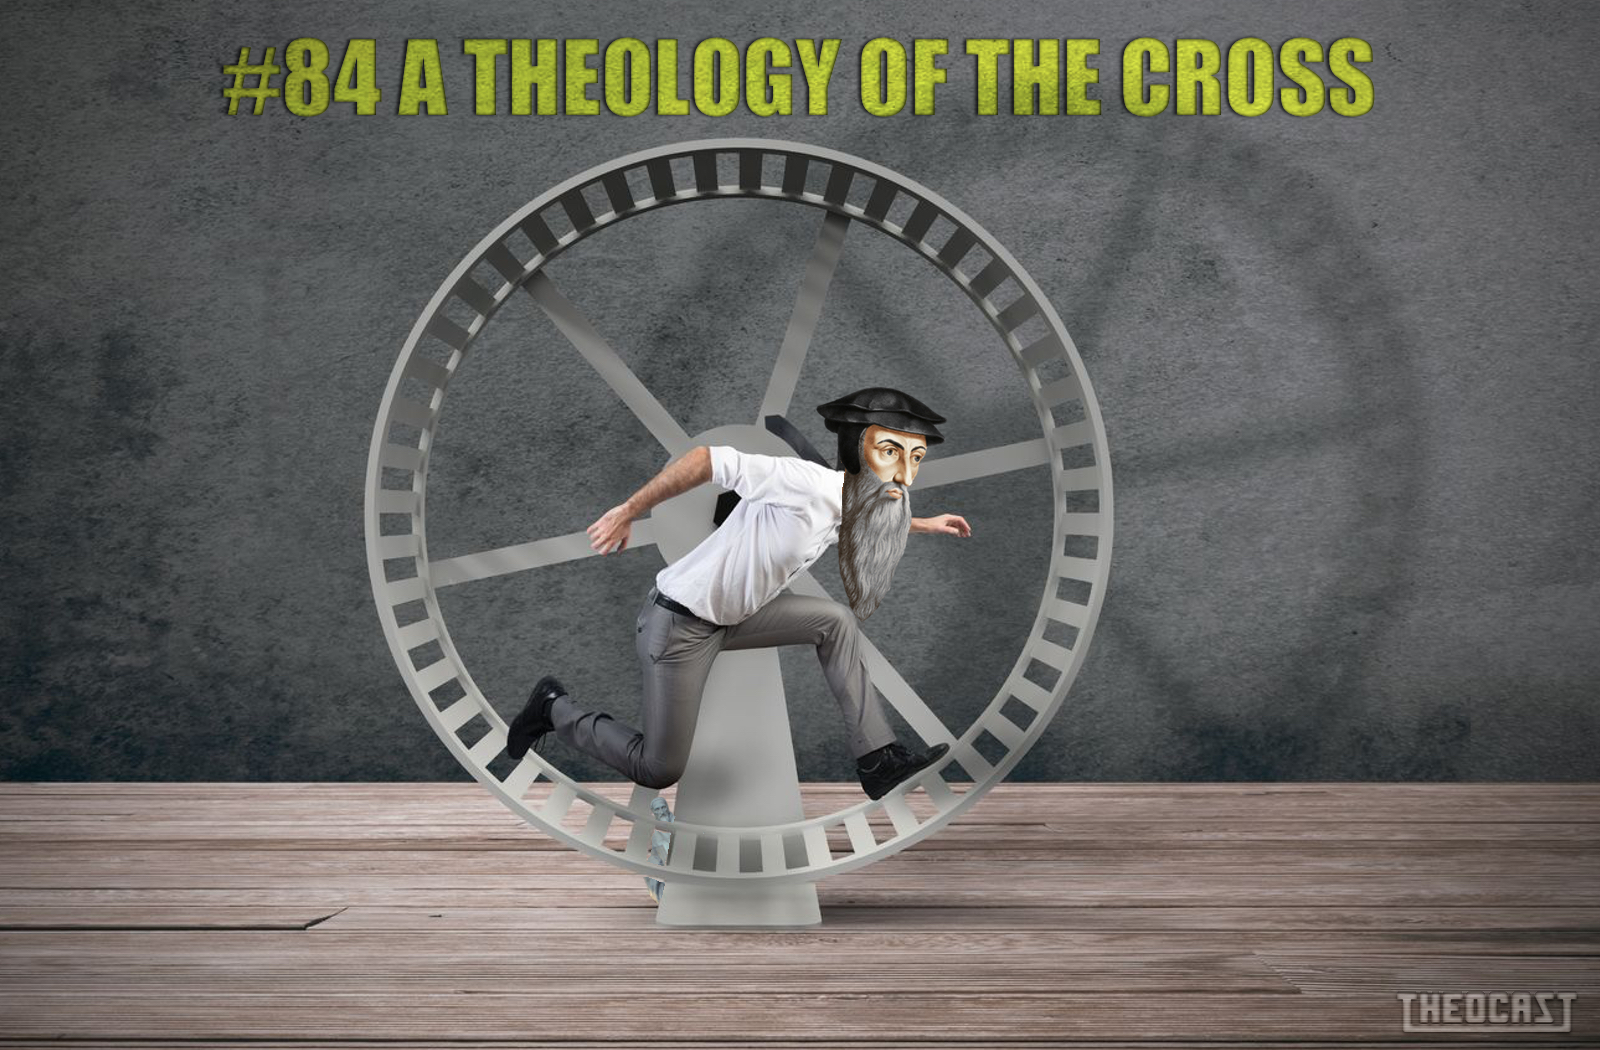 #84 A Theology of the Cross